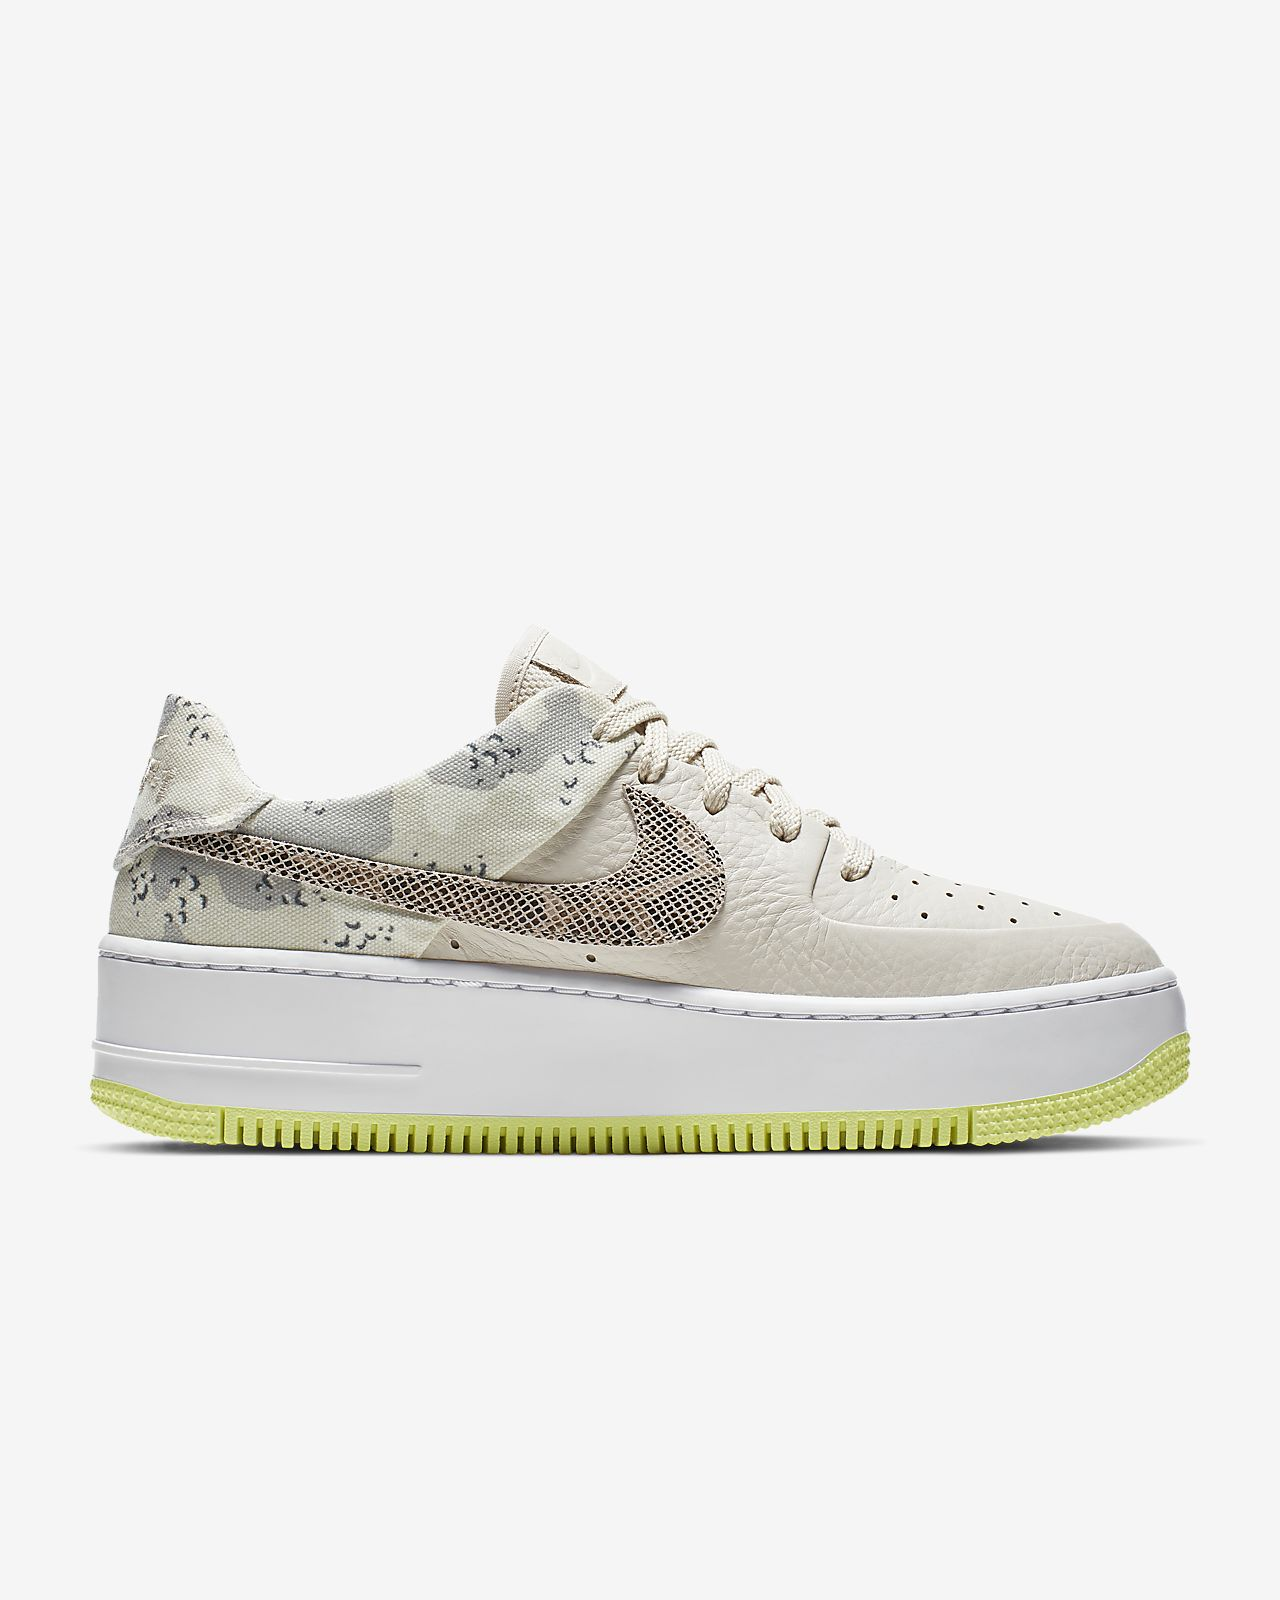 prix compétitif 6a8f6 bba1e Nike Air Force 1 Sage Low Premium Camo Women's Shoe